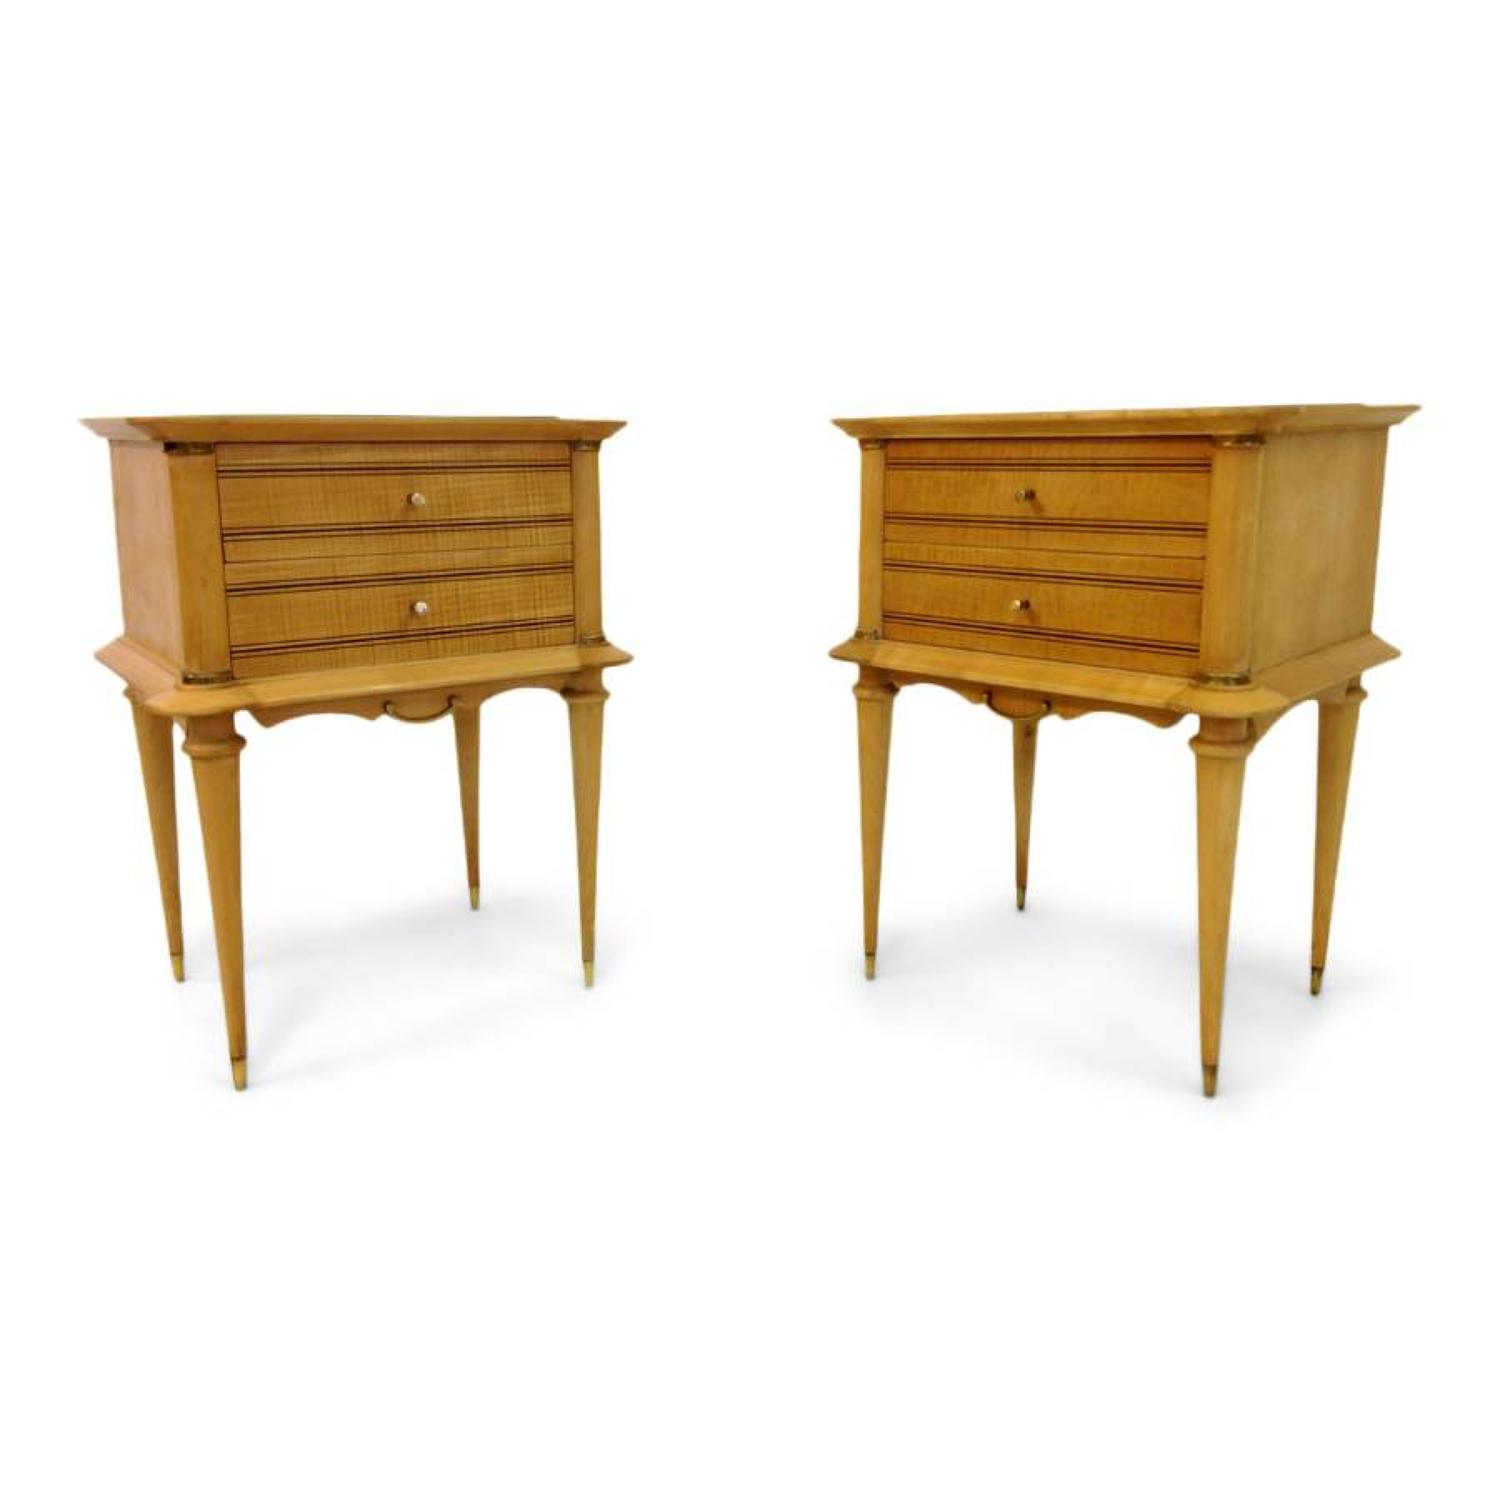 A pair of French sycamore bedside tables